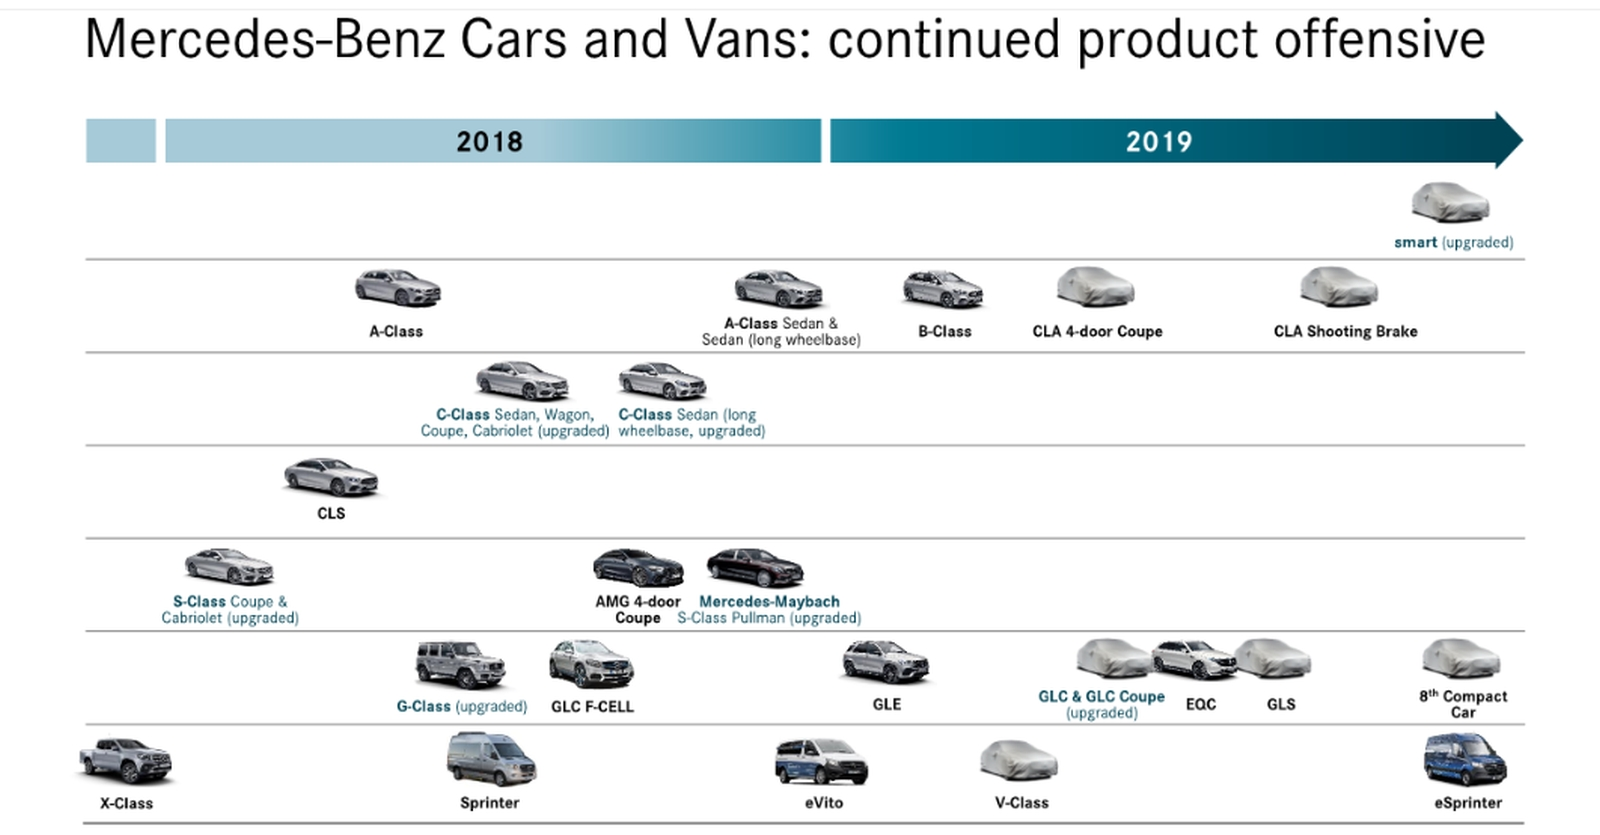 Mercedes-Benz Roadmap 2019